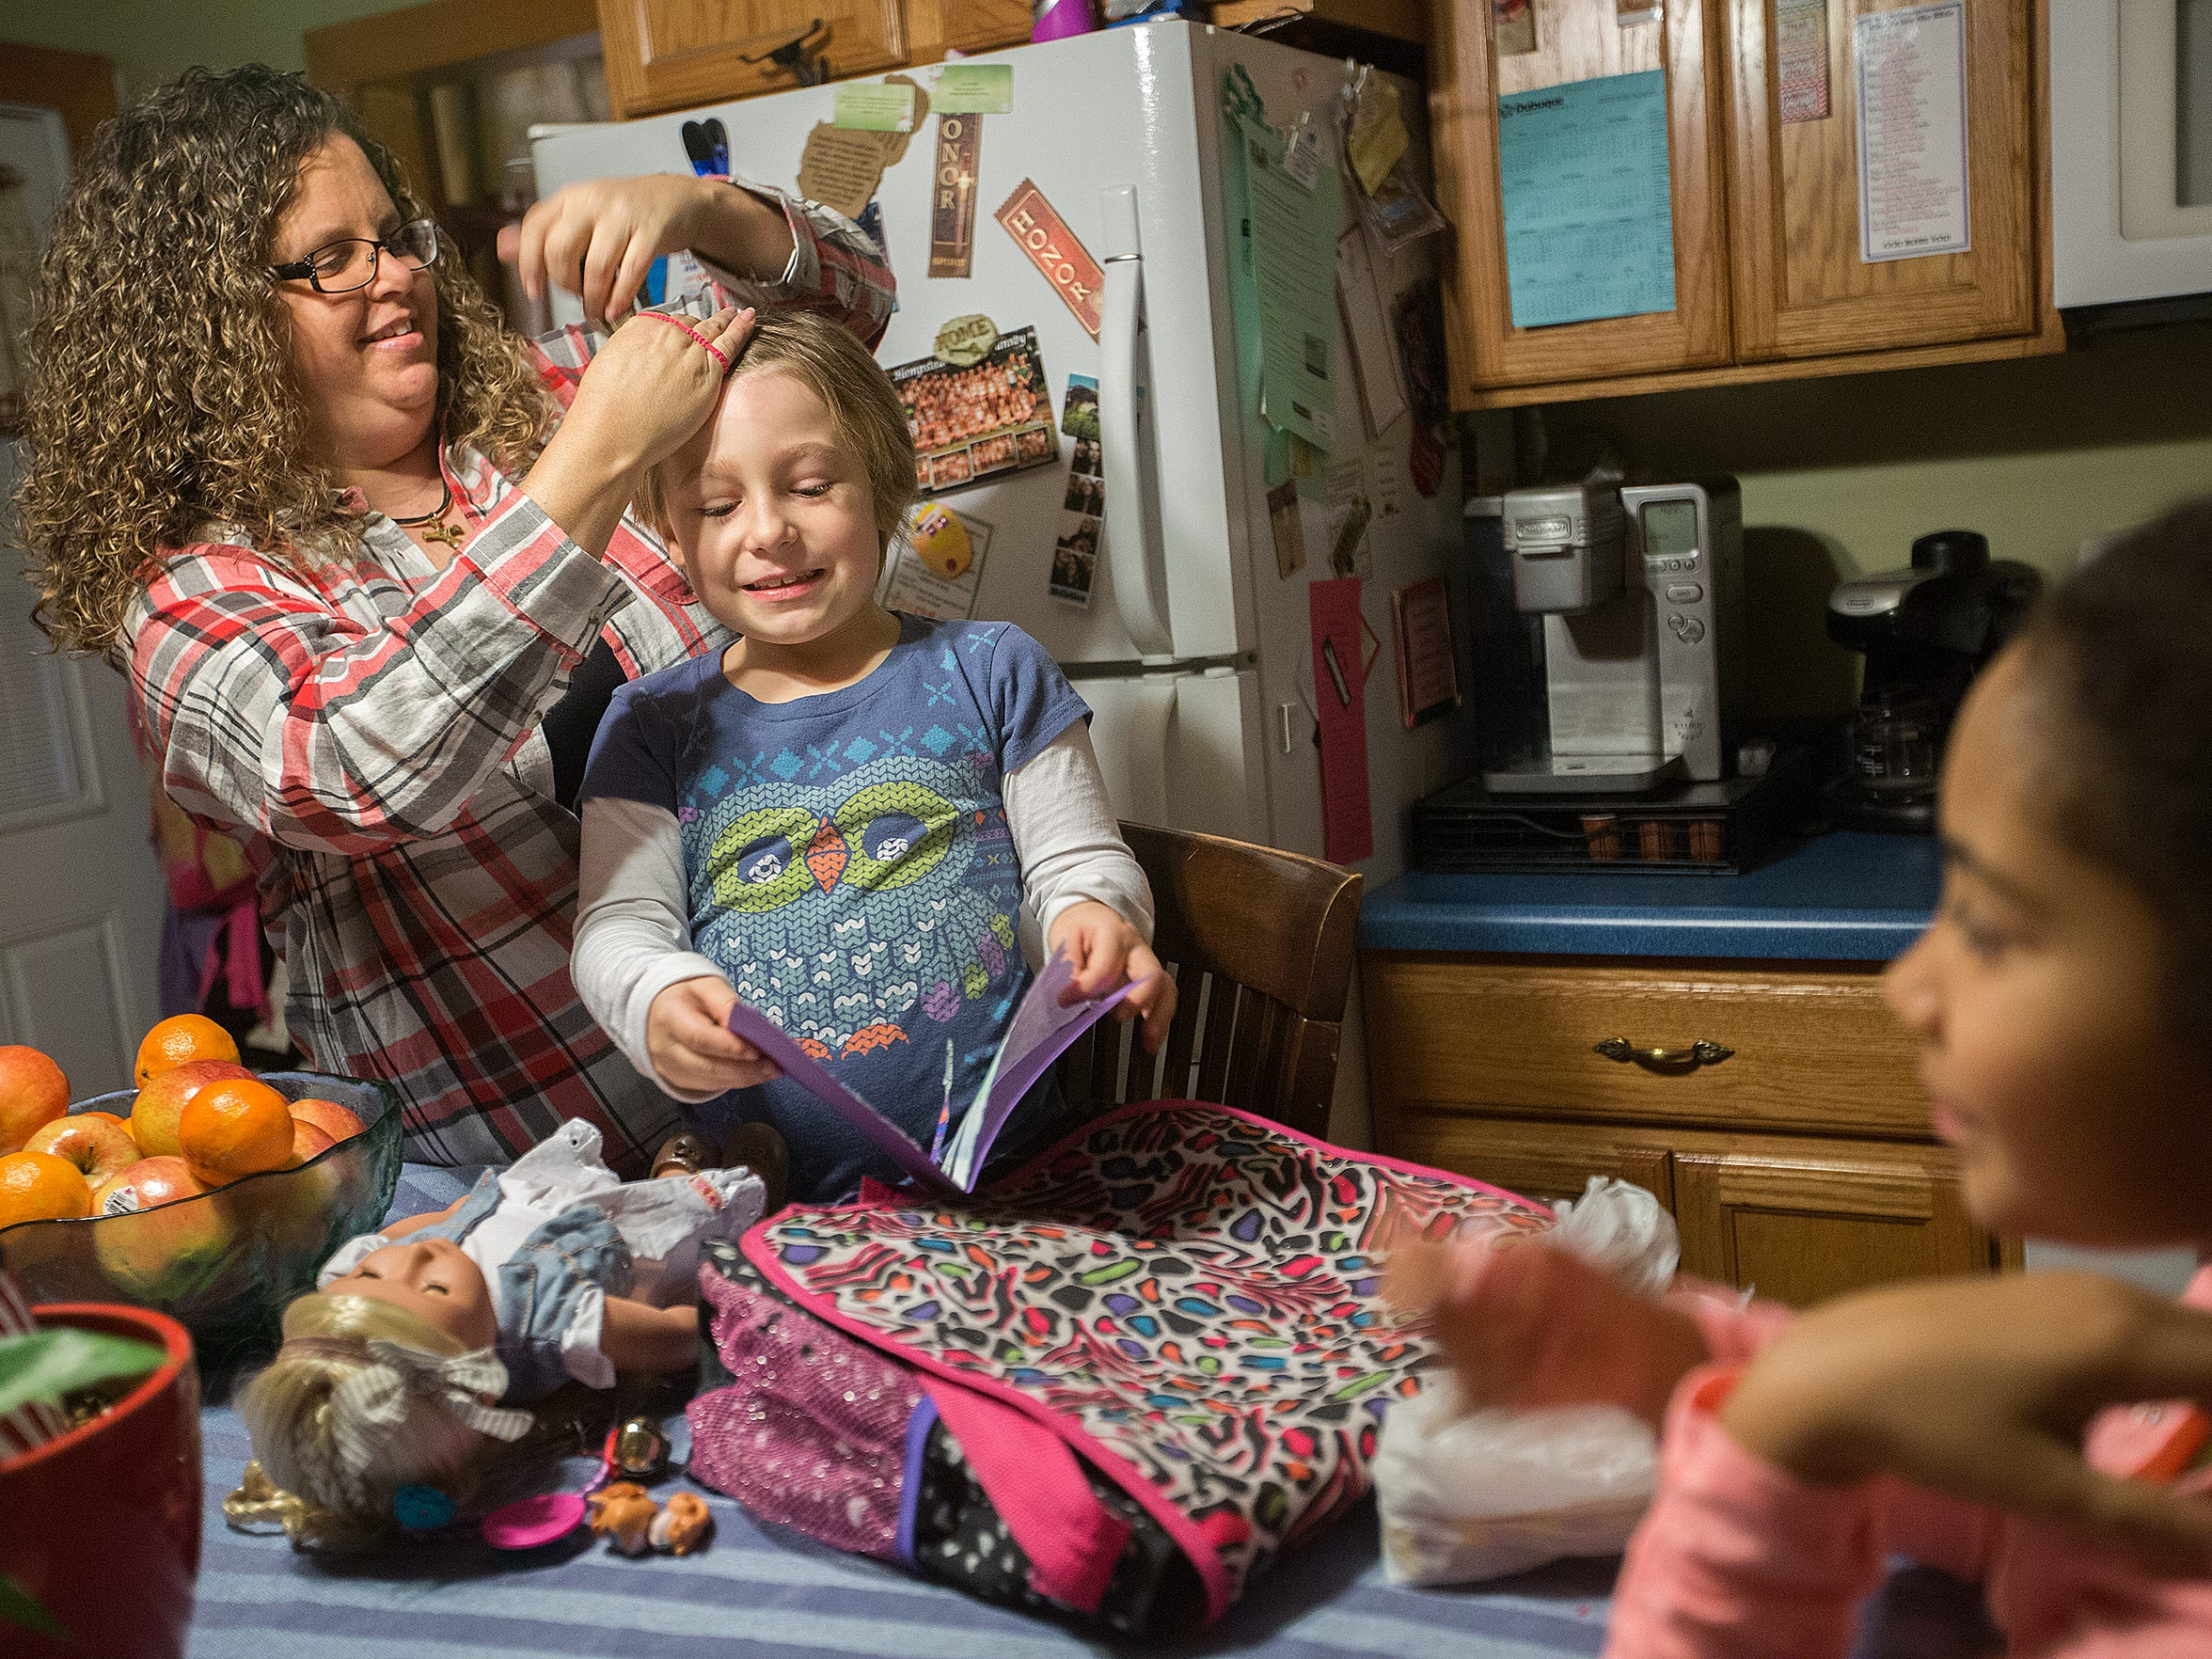 Karen Fox gets her adopted daughters Ella, 9, and Brenna, 7, ready to take to Fox's mother's apartment in Dubuque, Monday, Dec. 21, 2015. She has adopted three of the six girls she takes care of through the foster program.